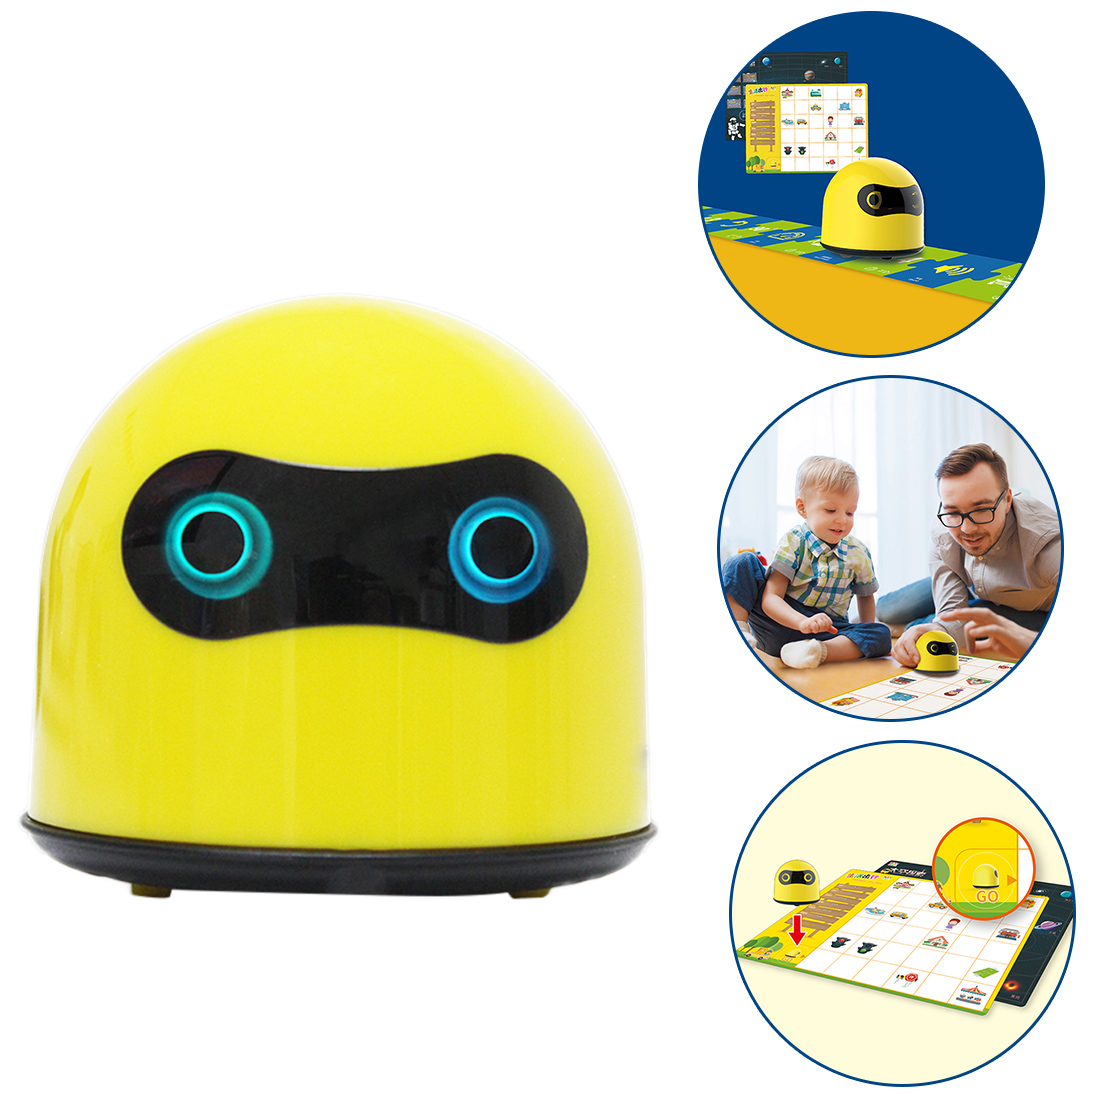 High Recomend 1 Pcs Programmed Robot Car Kit Steam Early Education Learning Ai Programming Toy With High Quality